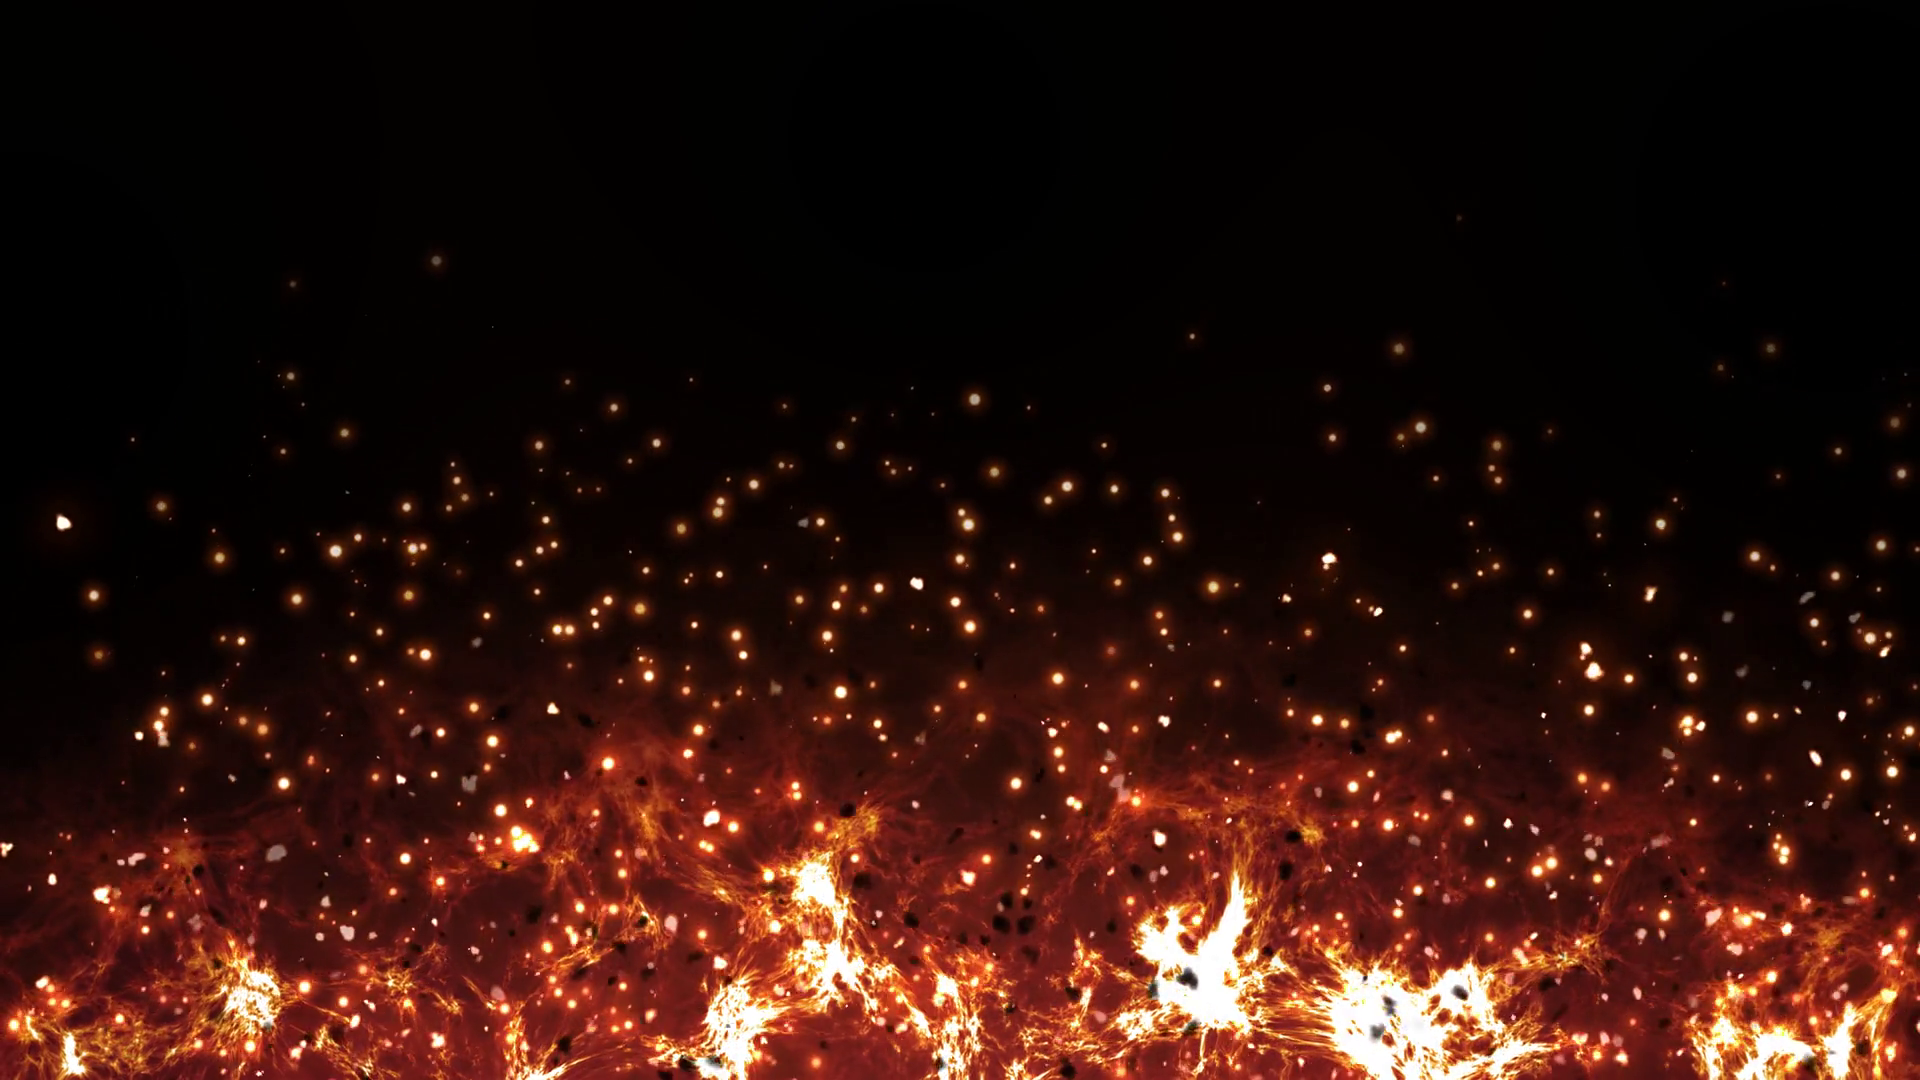 Fire and ash flying the sky from hot burning flame. Sparking firefly  pattern in black background in 4k fire concept. Motion Background -  VideoBlocks - Ashes PNG